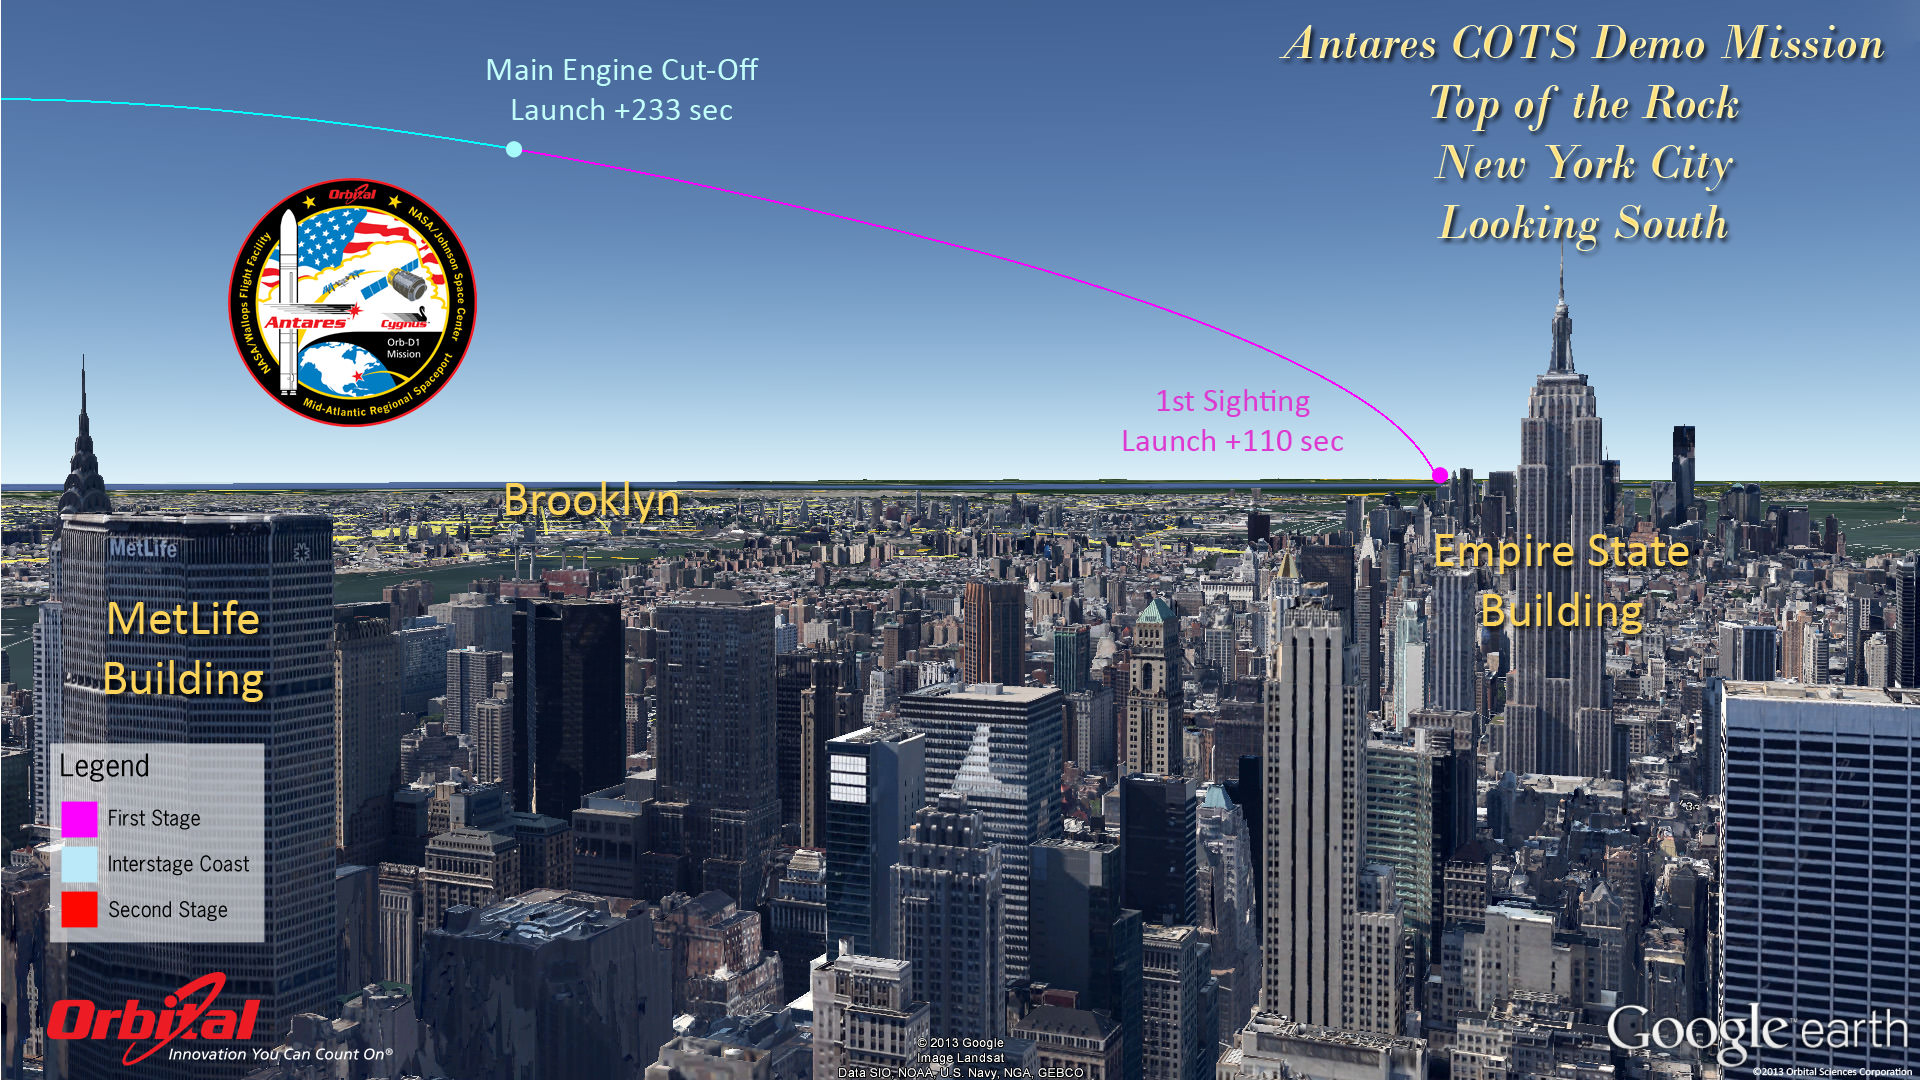 How to See the Historic Antares/Cygnus Launch to Space ...